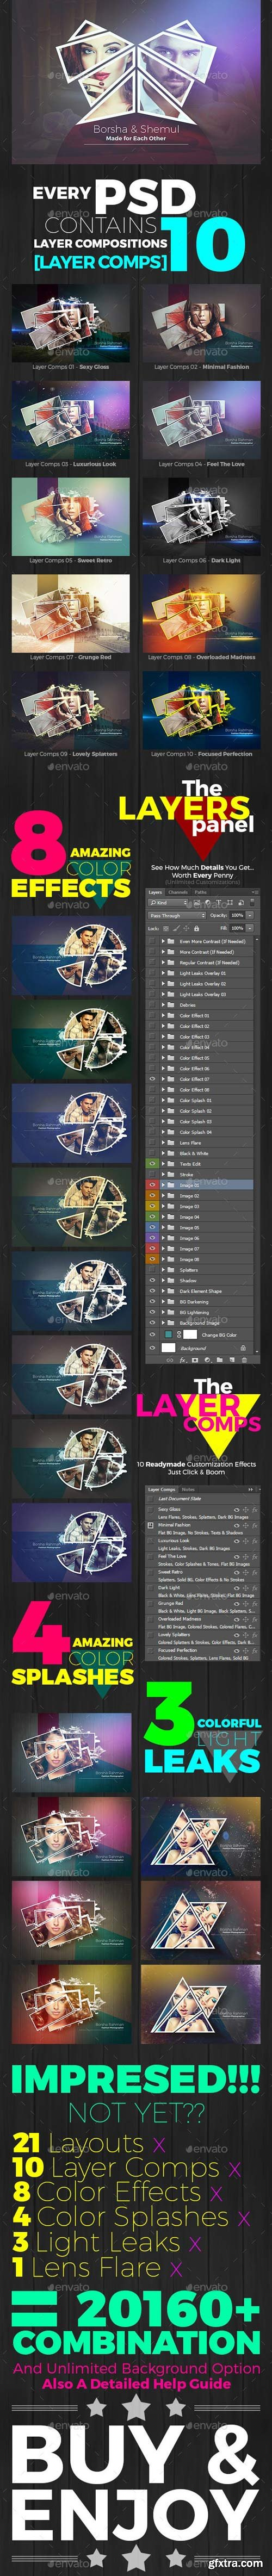 GraphicRiver - Abstract Photo Collage Pro v.5 - 13795618